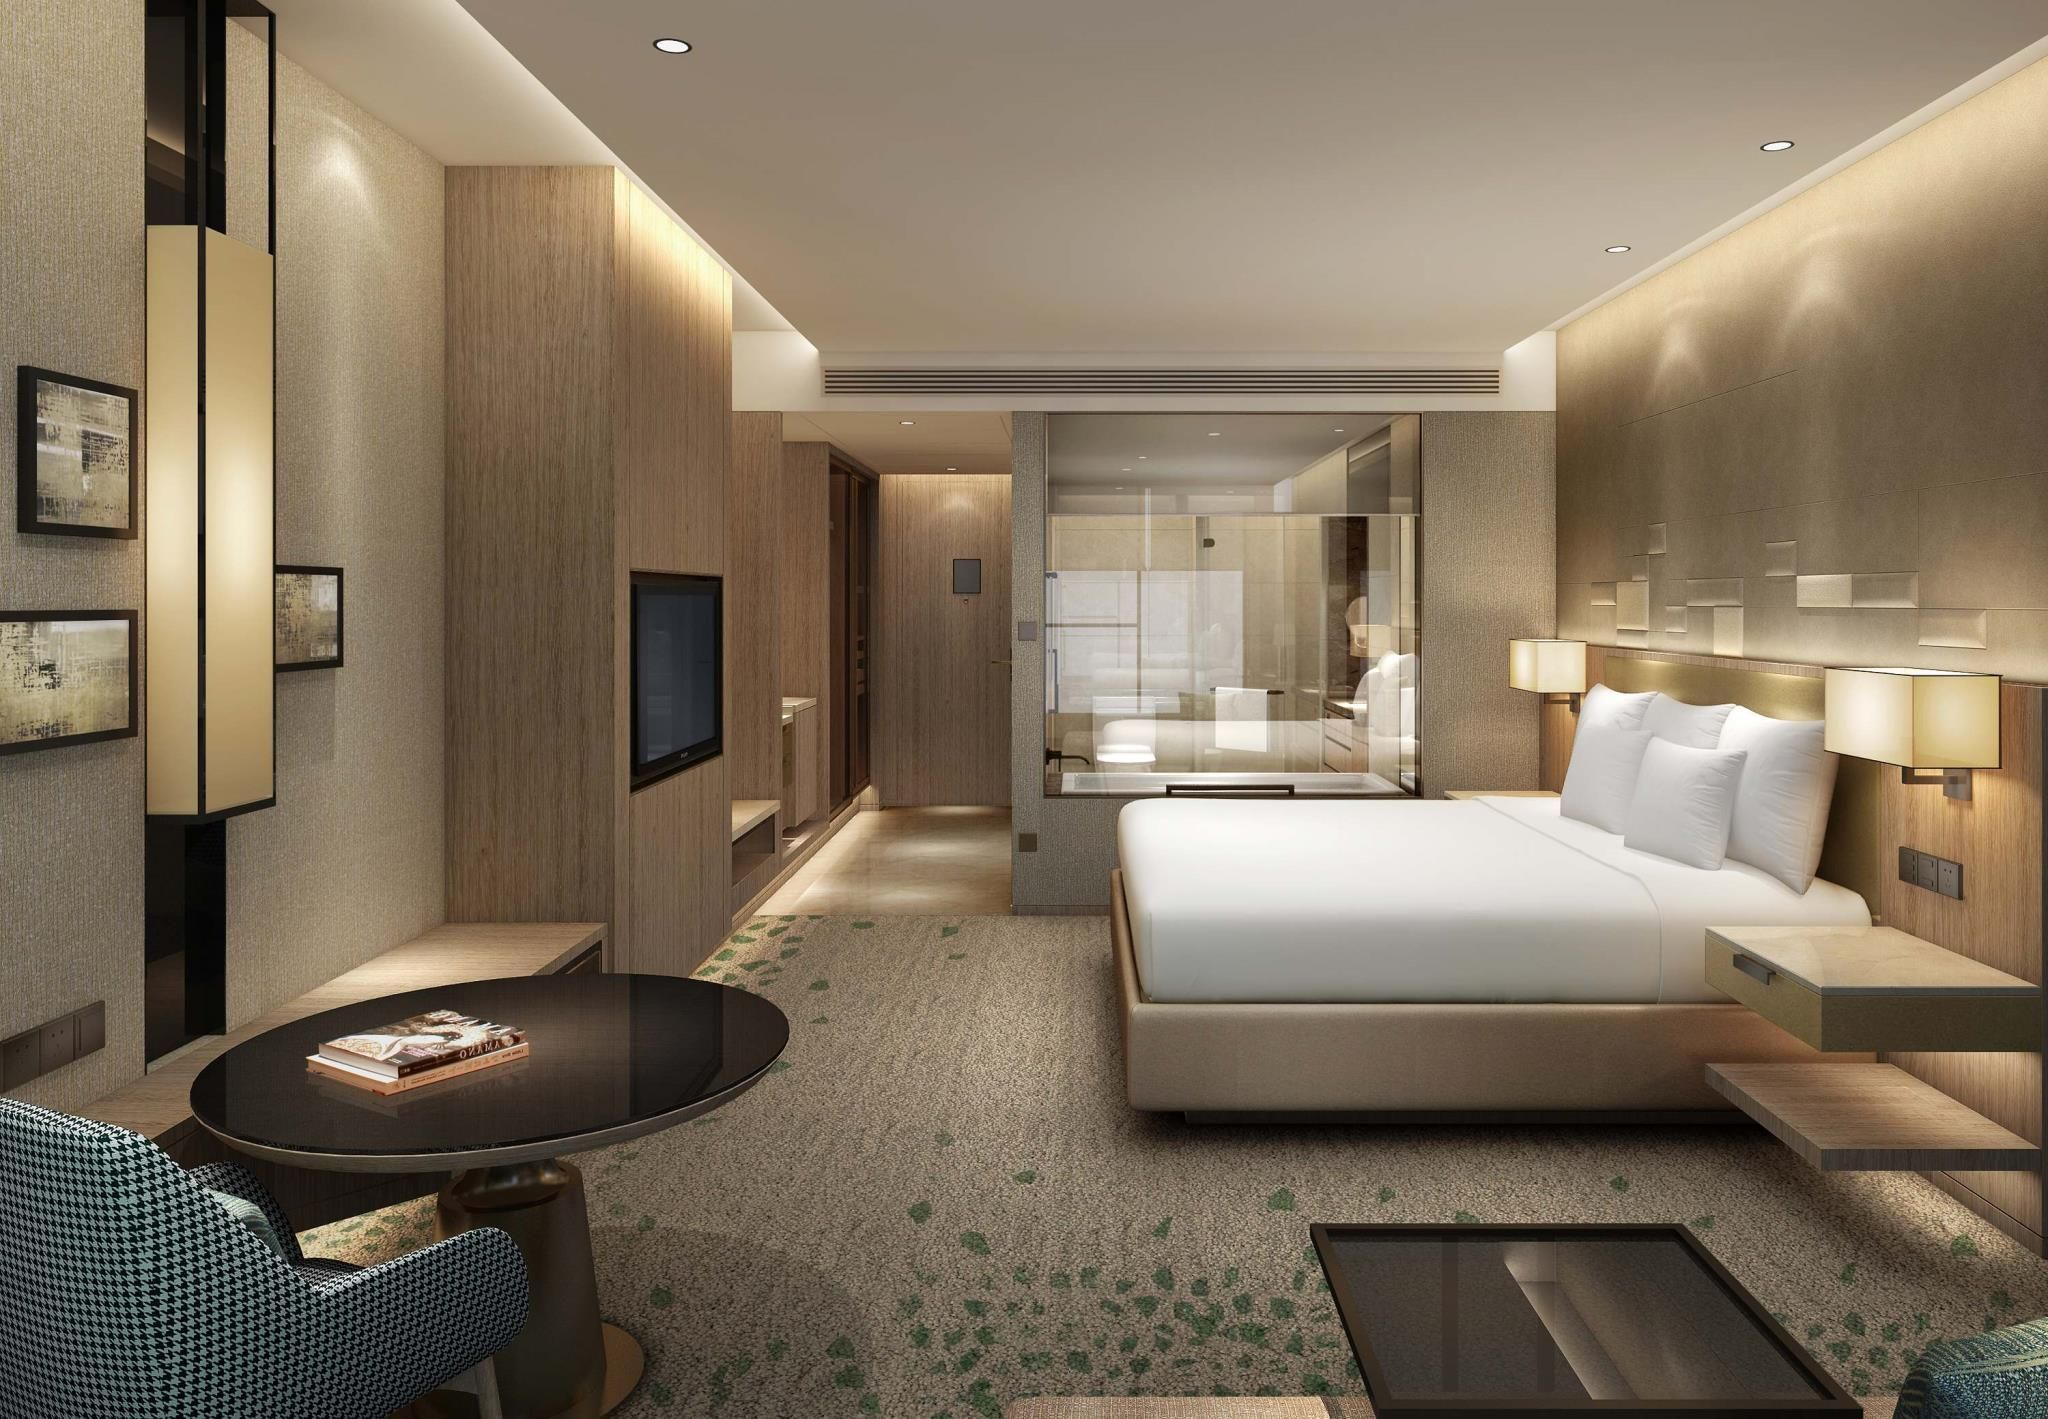 Chengdu Marriott Hotel Financial Centre Chengdu China Hotel Bedroom Design Hotel Room Design Hotel Room Plan